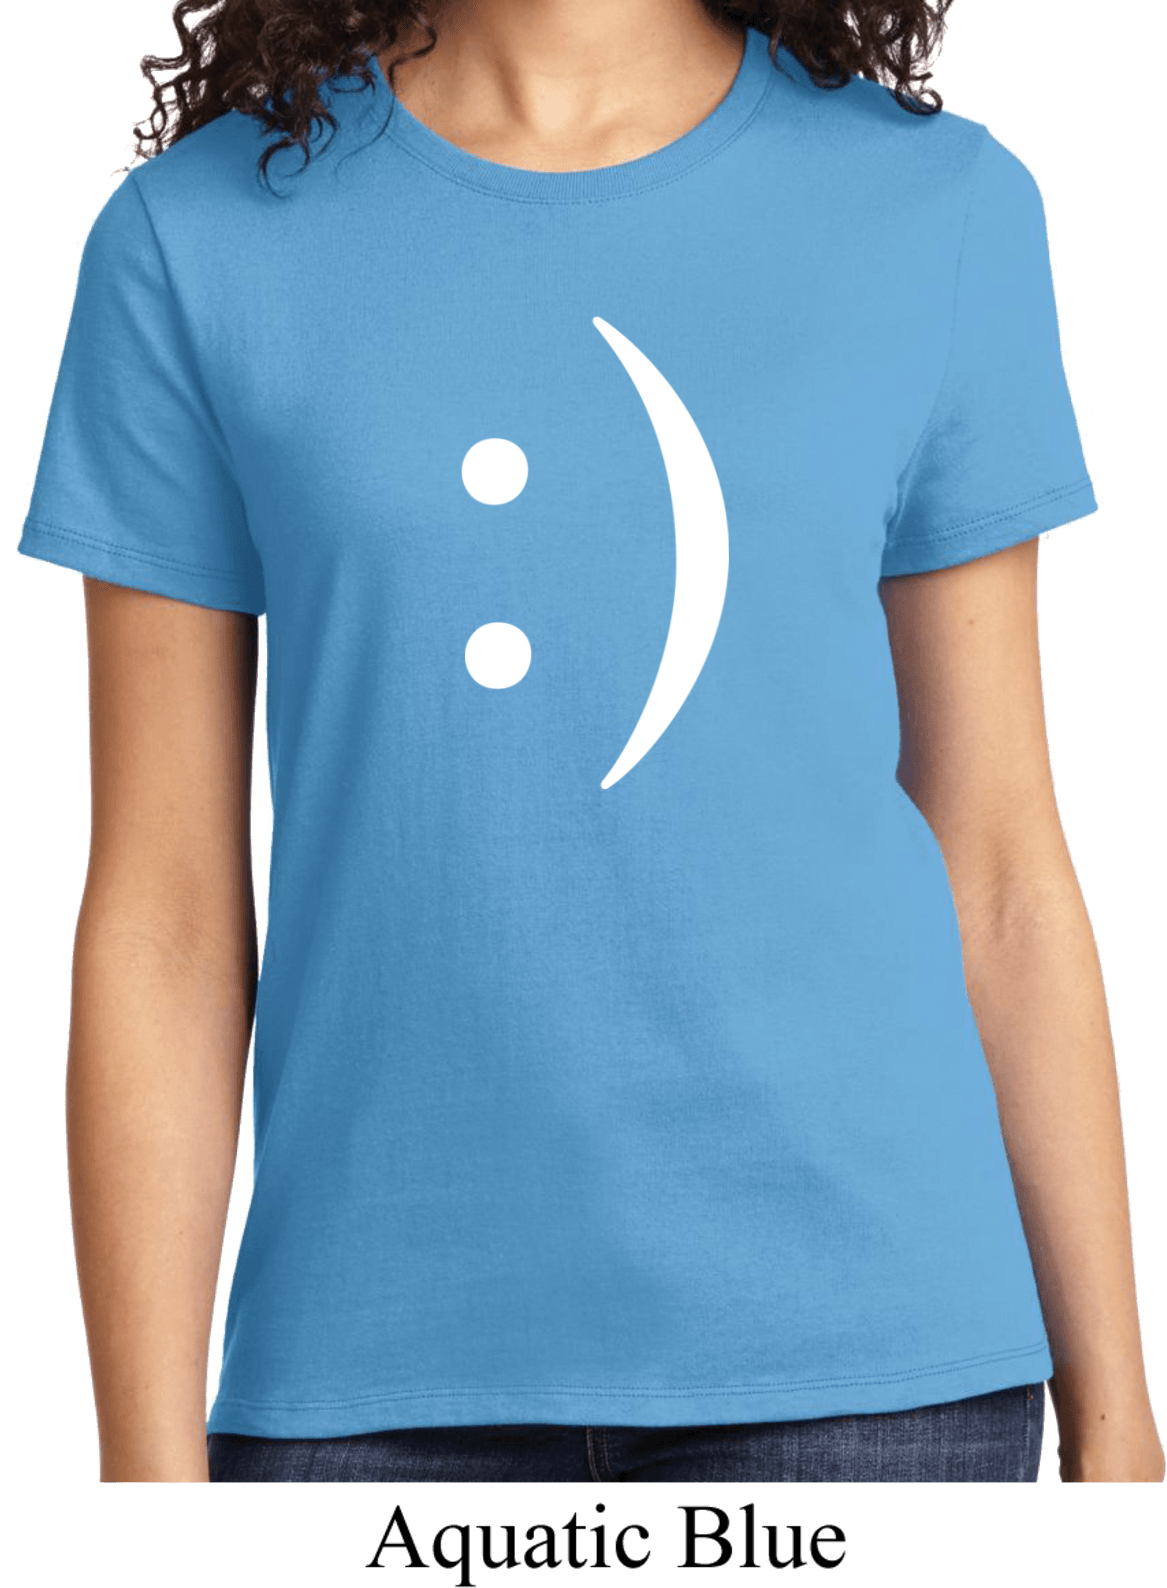 ladies funny shirt smiley chat face tee t shirt smiley. Black Bedroom Furniture Sets. Home Design Ideas